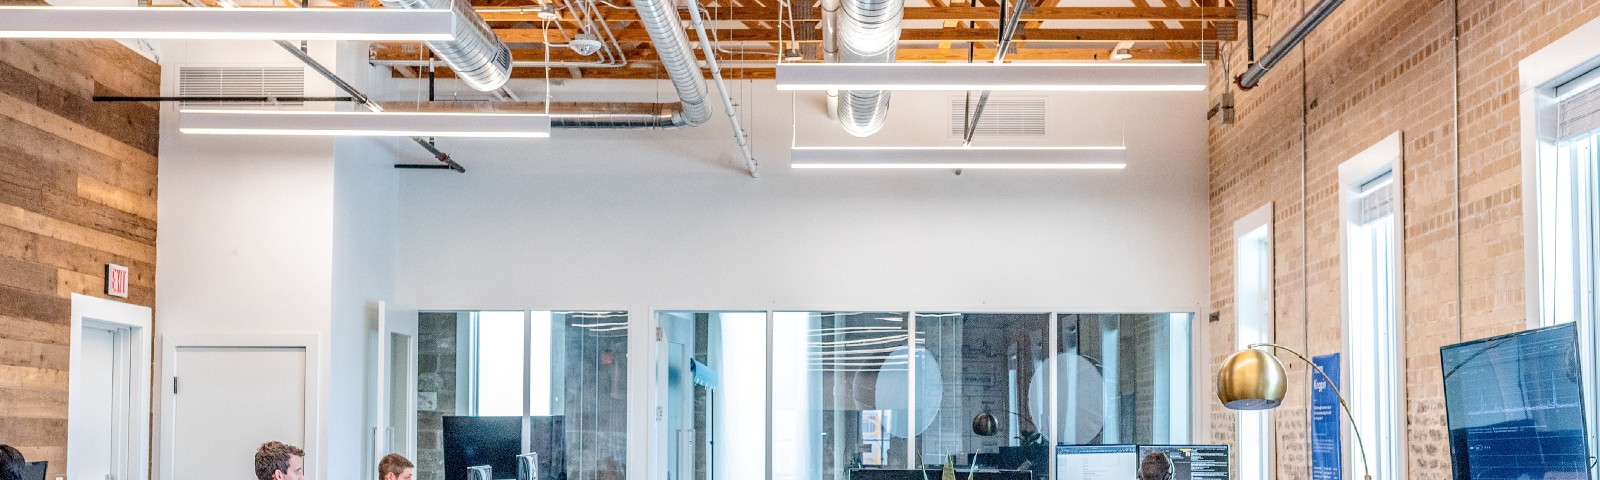 Bright, open office space with some people working at their desks